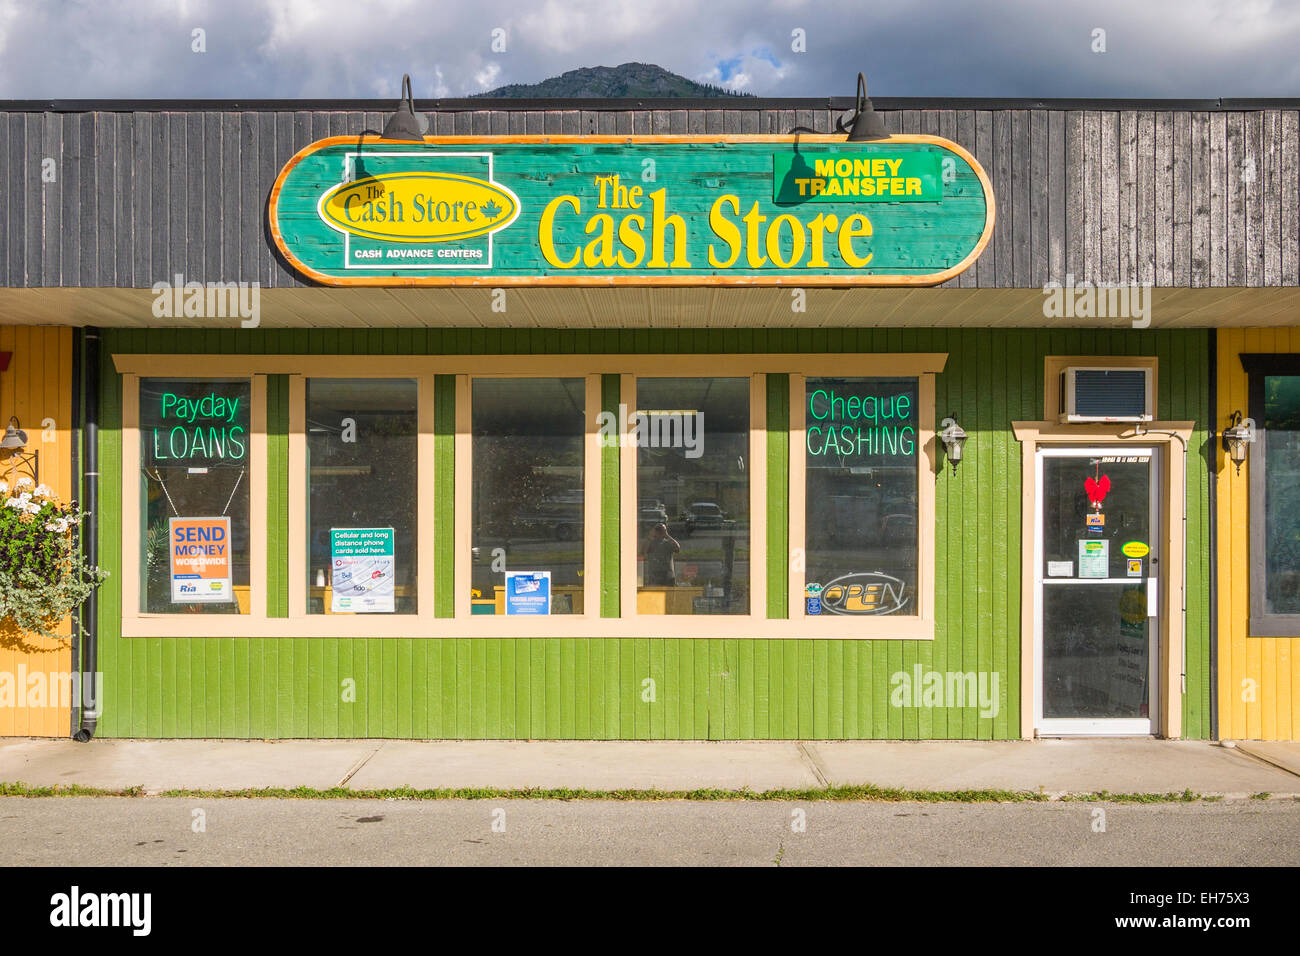 'The Cash Store', Fernie, BC, Canada.  Offers cheque cashing, money transfer, phone cards and payday loans. - Stock Image